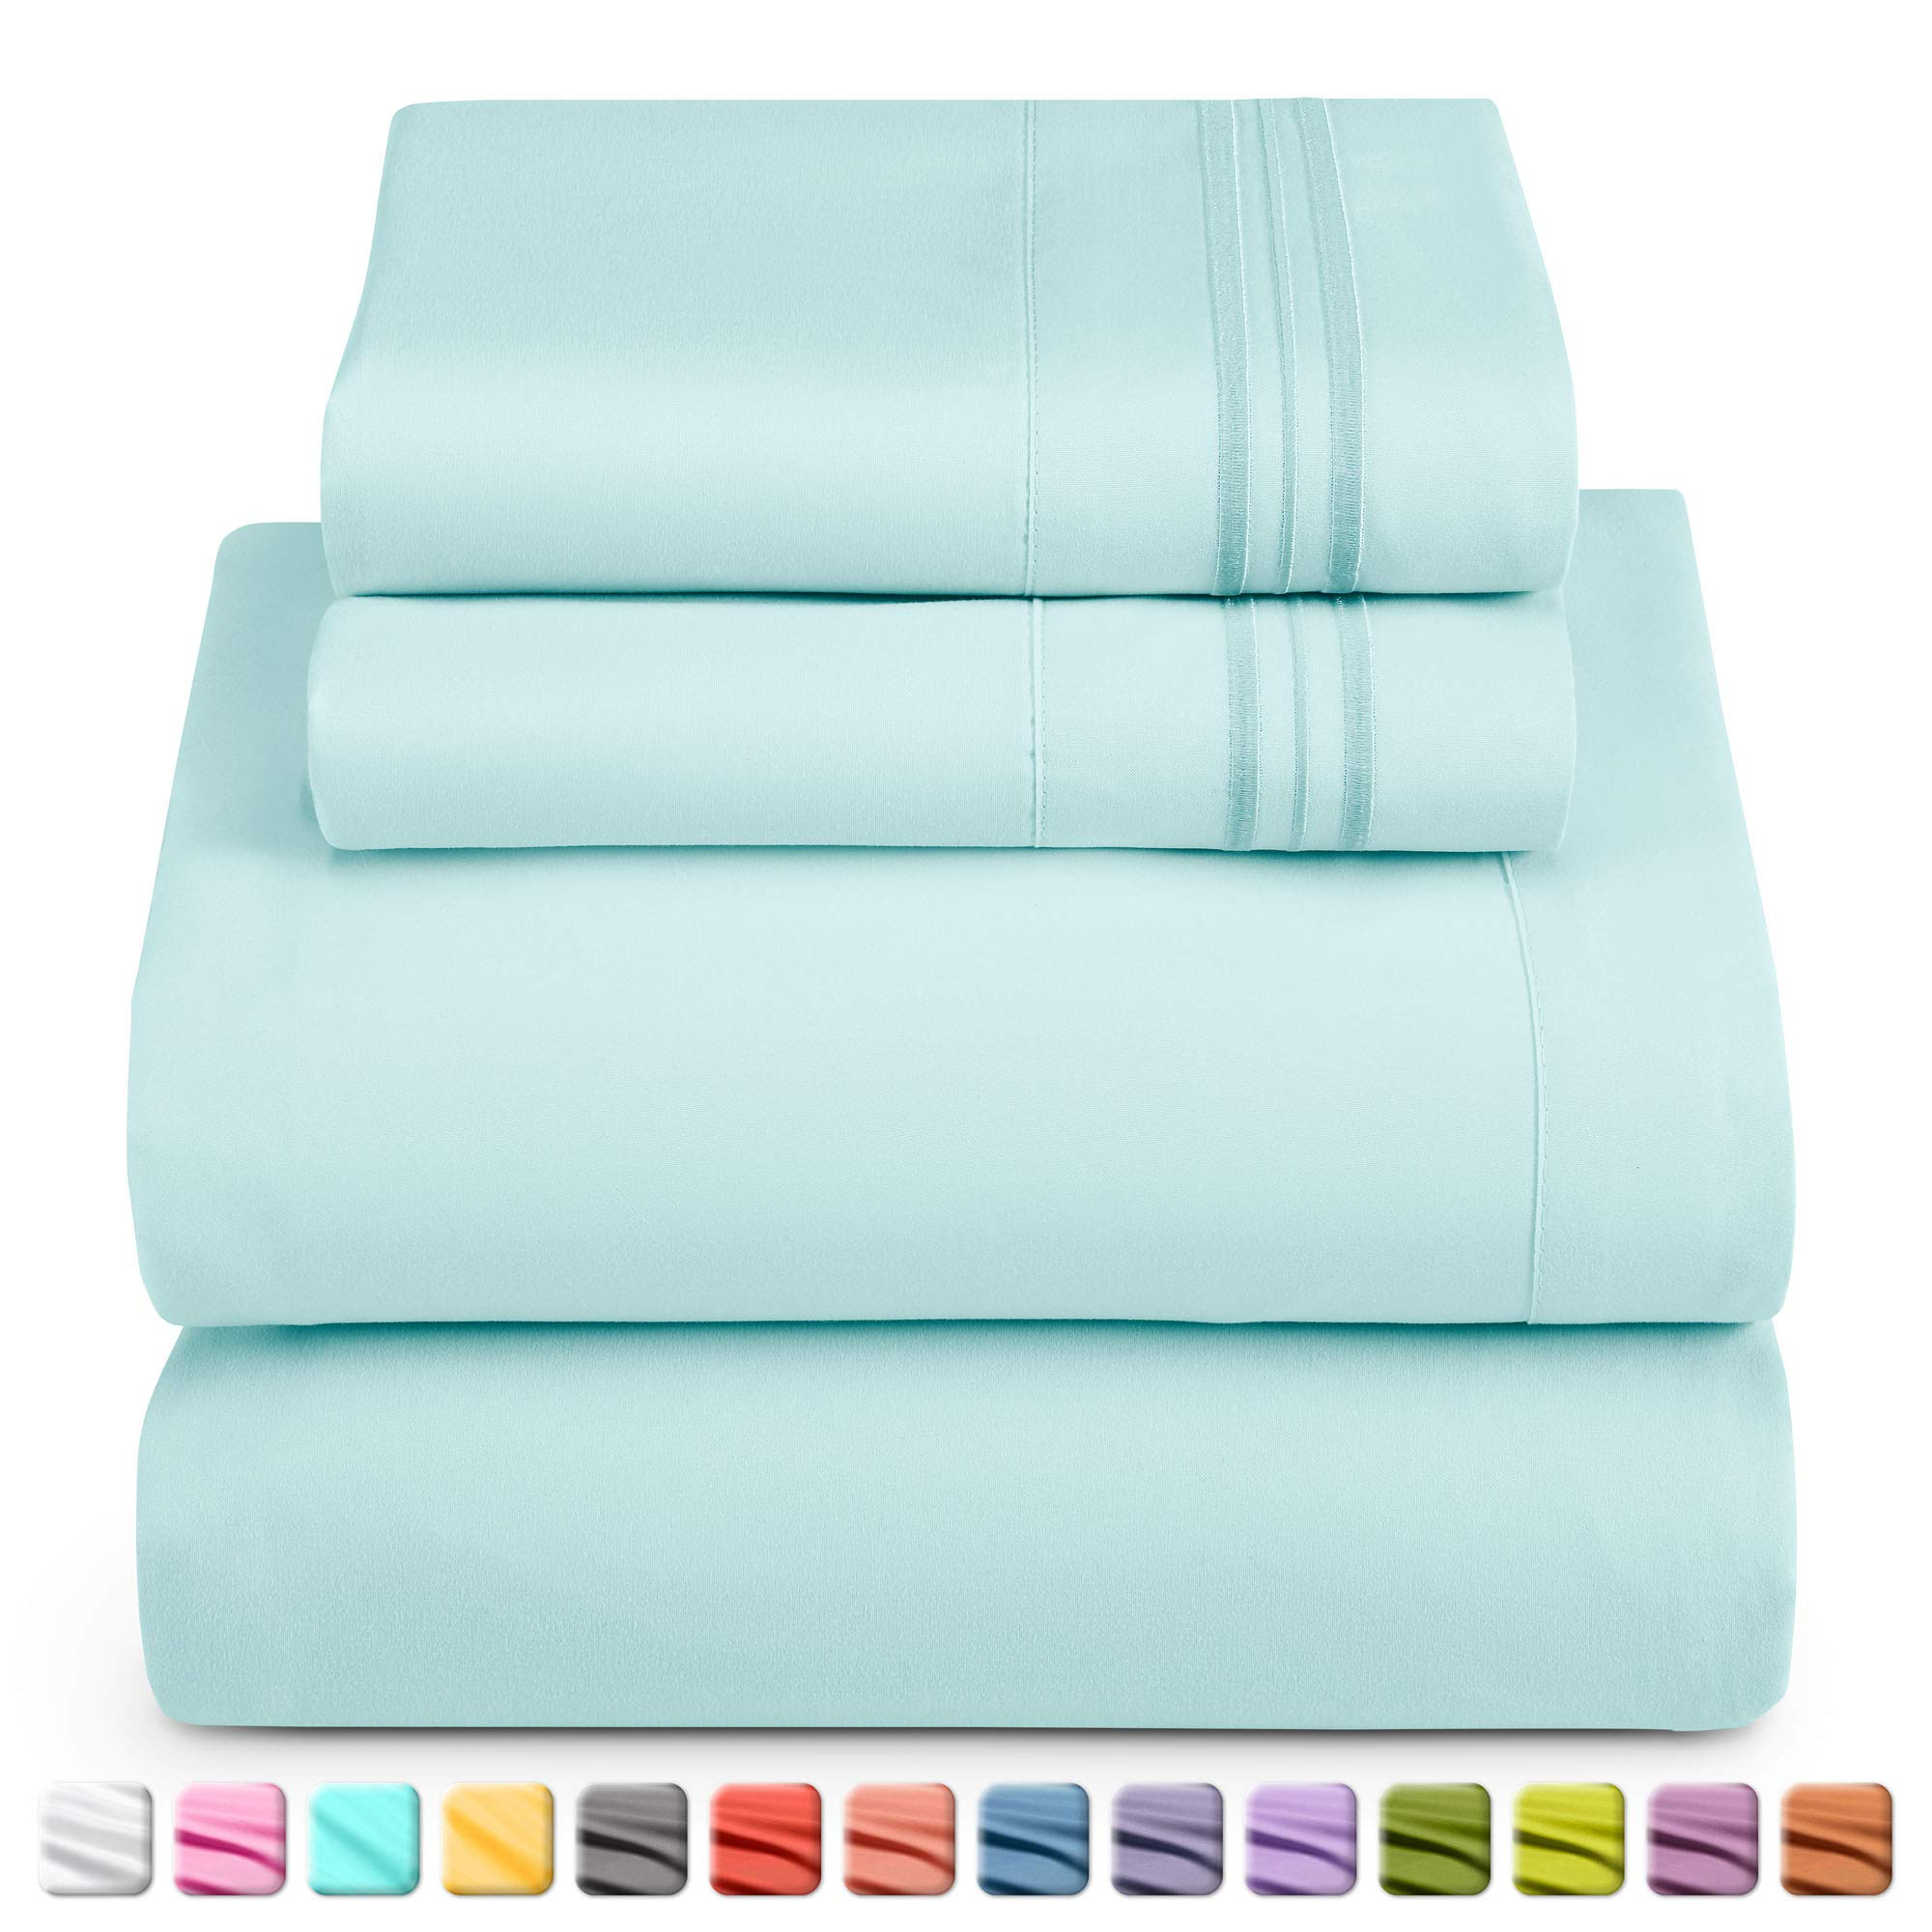 Nestl Deep Pocket King Sheets: King Size Bed Sheets with Fitted and Flat Sheet, Pillow Cases - Extra Soft Microfiber Bedsheet Set with Deep Pockets for King Sized Mattress - Light Baby Blue